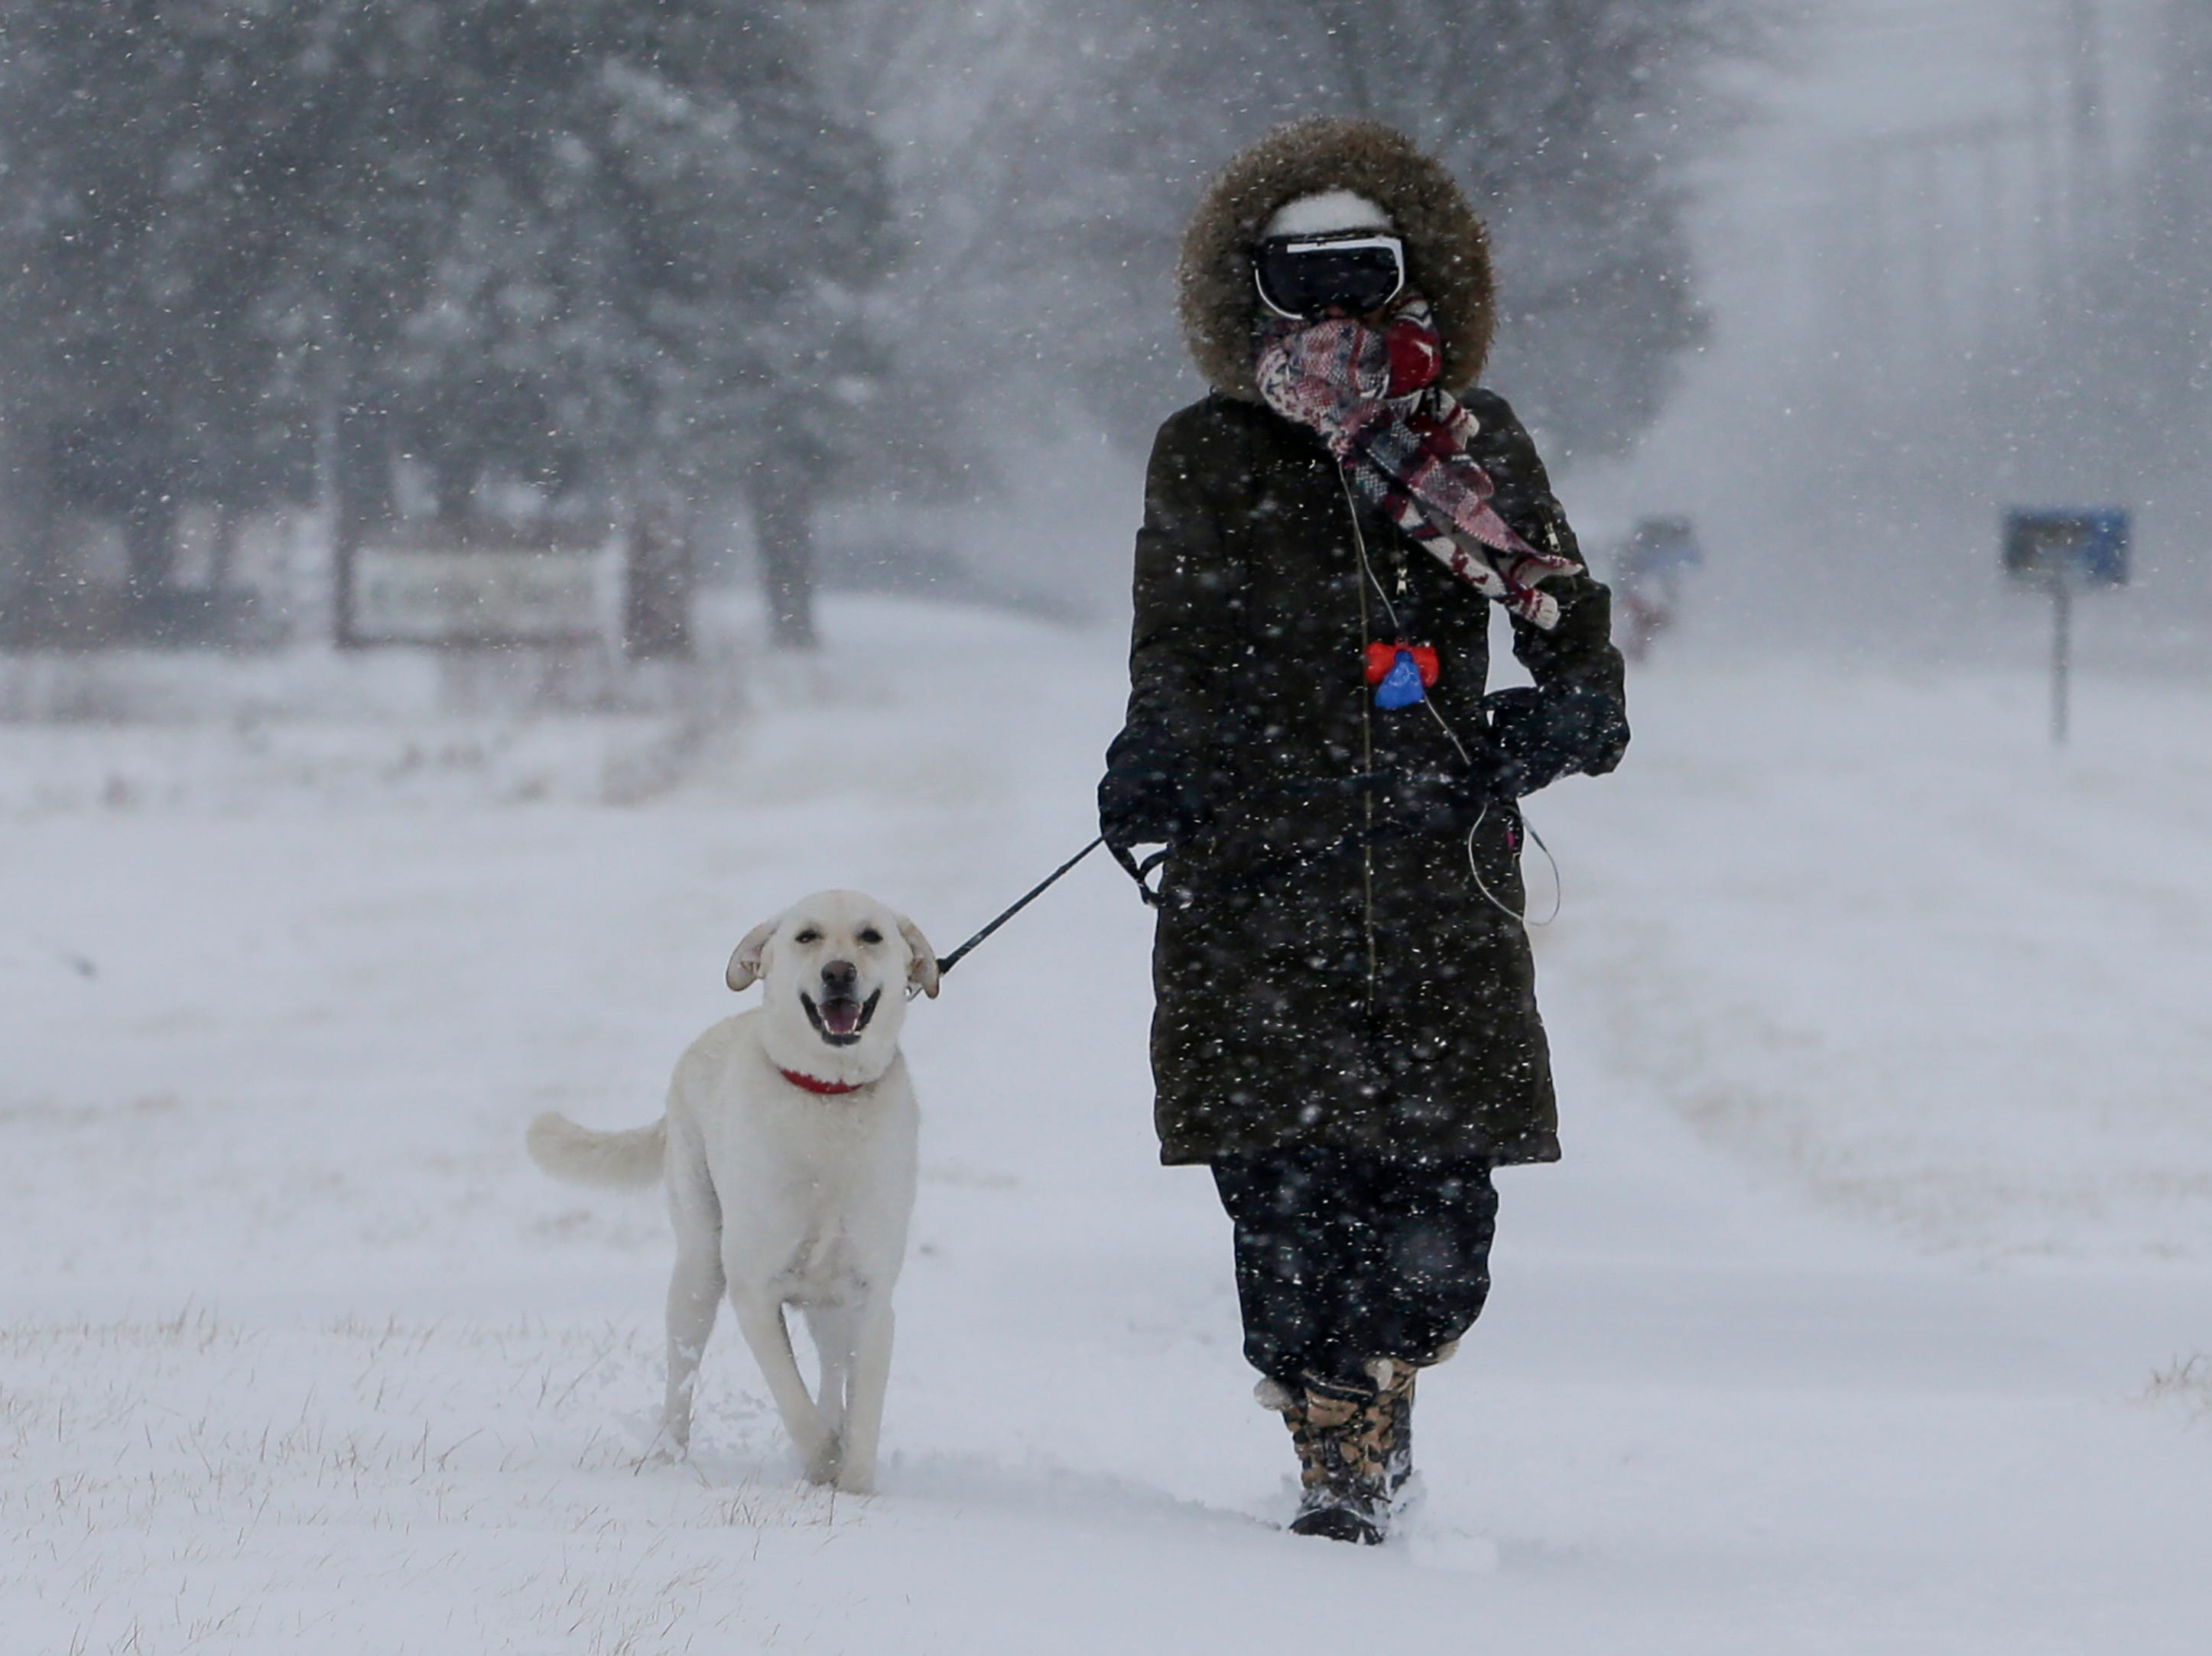 Alexa Walters battles heavy wind and snow while walking her dog Beau Tuesday, Apr. 3, 2018, in Manitowoc, Wis. Josh Clark/USA TODAY NETWORK-Wisconsin